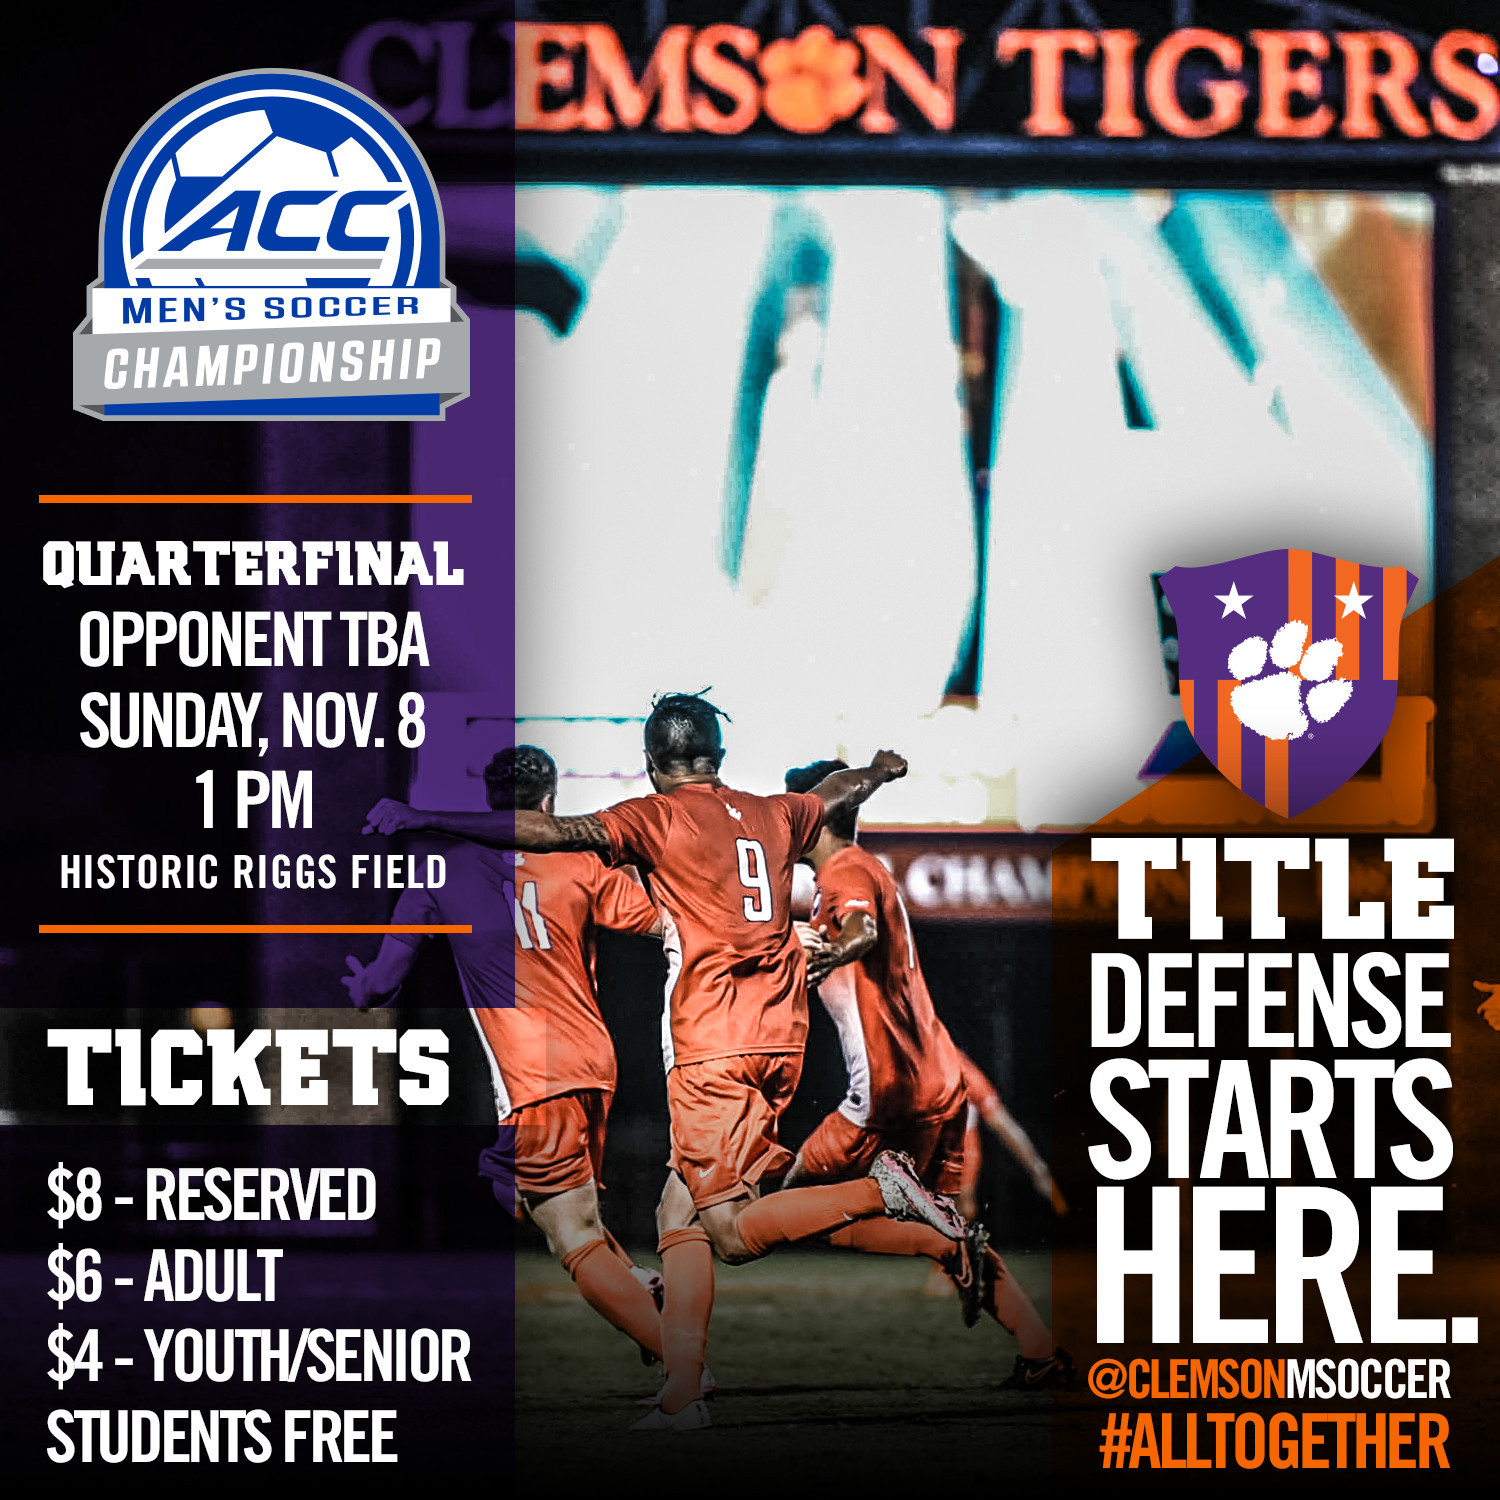 Tickets Available for ACC Tournament Quarterfinal Match at Riggs on Nov. 8